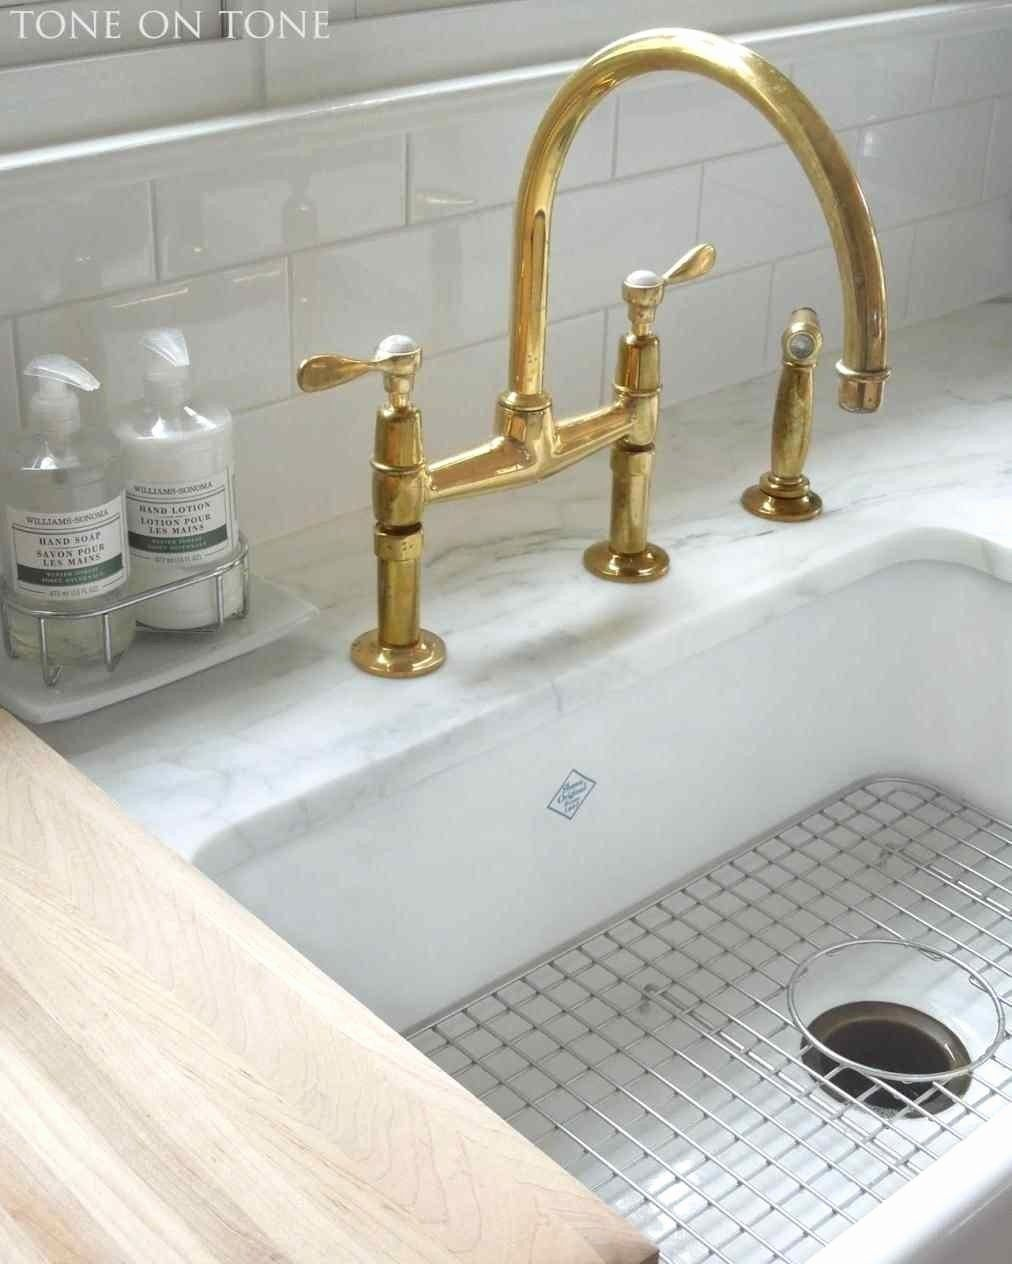 Antique Gold Bathroom Faucets In 2020 Brass Kitchen Faucet Gold Bathroom Faucet Wall Mount Kitchen Faucet